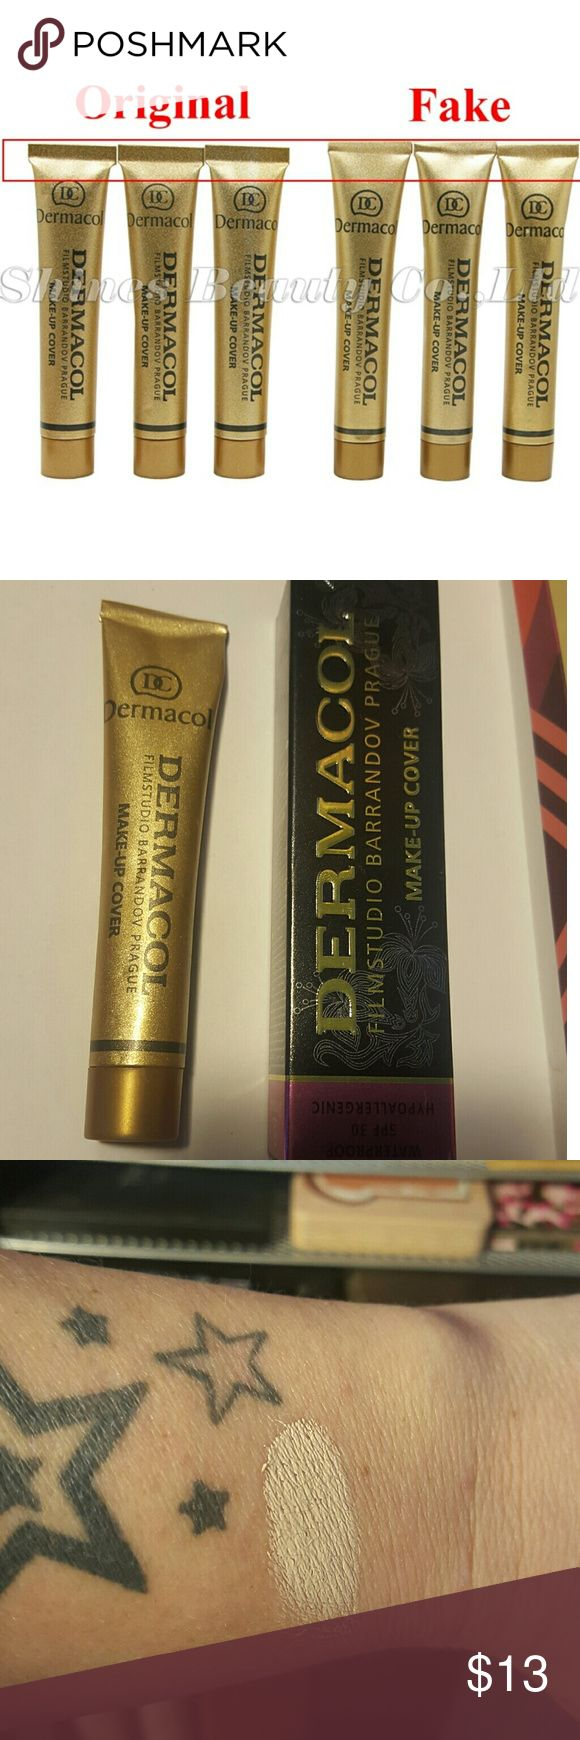 Beware! There is already fake dermacol!!! I AM NOT SELLING THIS! THIS IS A WARNING MESSAGE FOR EVERYONE TO BEWARE OF THE FAKES!  I purchased this off a different site and recieved a fake! You can see in the first pic how to spot a fake and then in the 2nd is what I recieved. I ordered 207 and it was almost white in color and was sticky and had awful coverage!   I swatched in 3rd pic.  In 4th pic are swatches of the real 207 and u can see the huge difference! dermacol Makeup Foundation